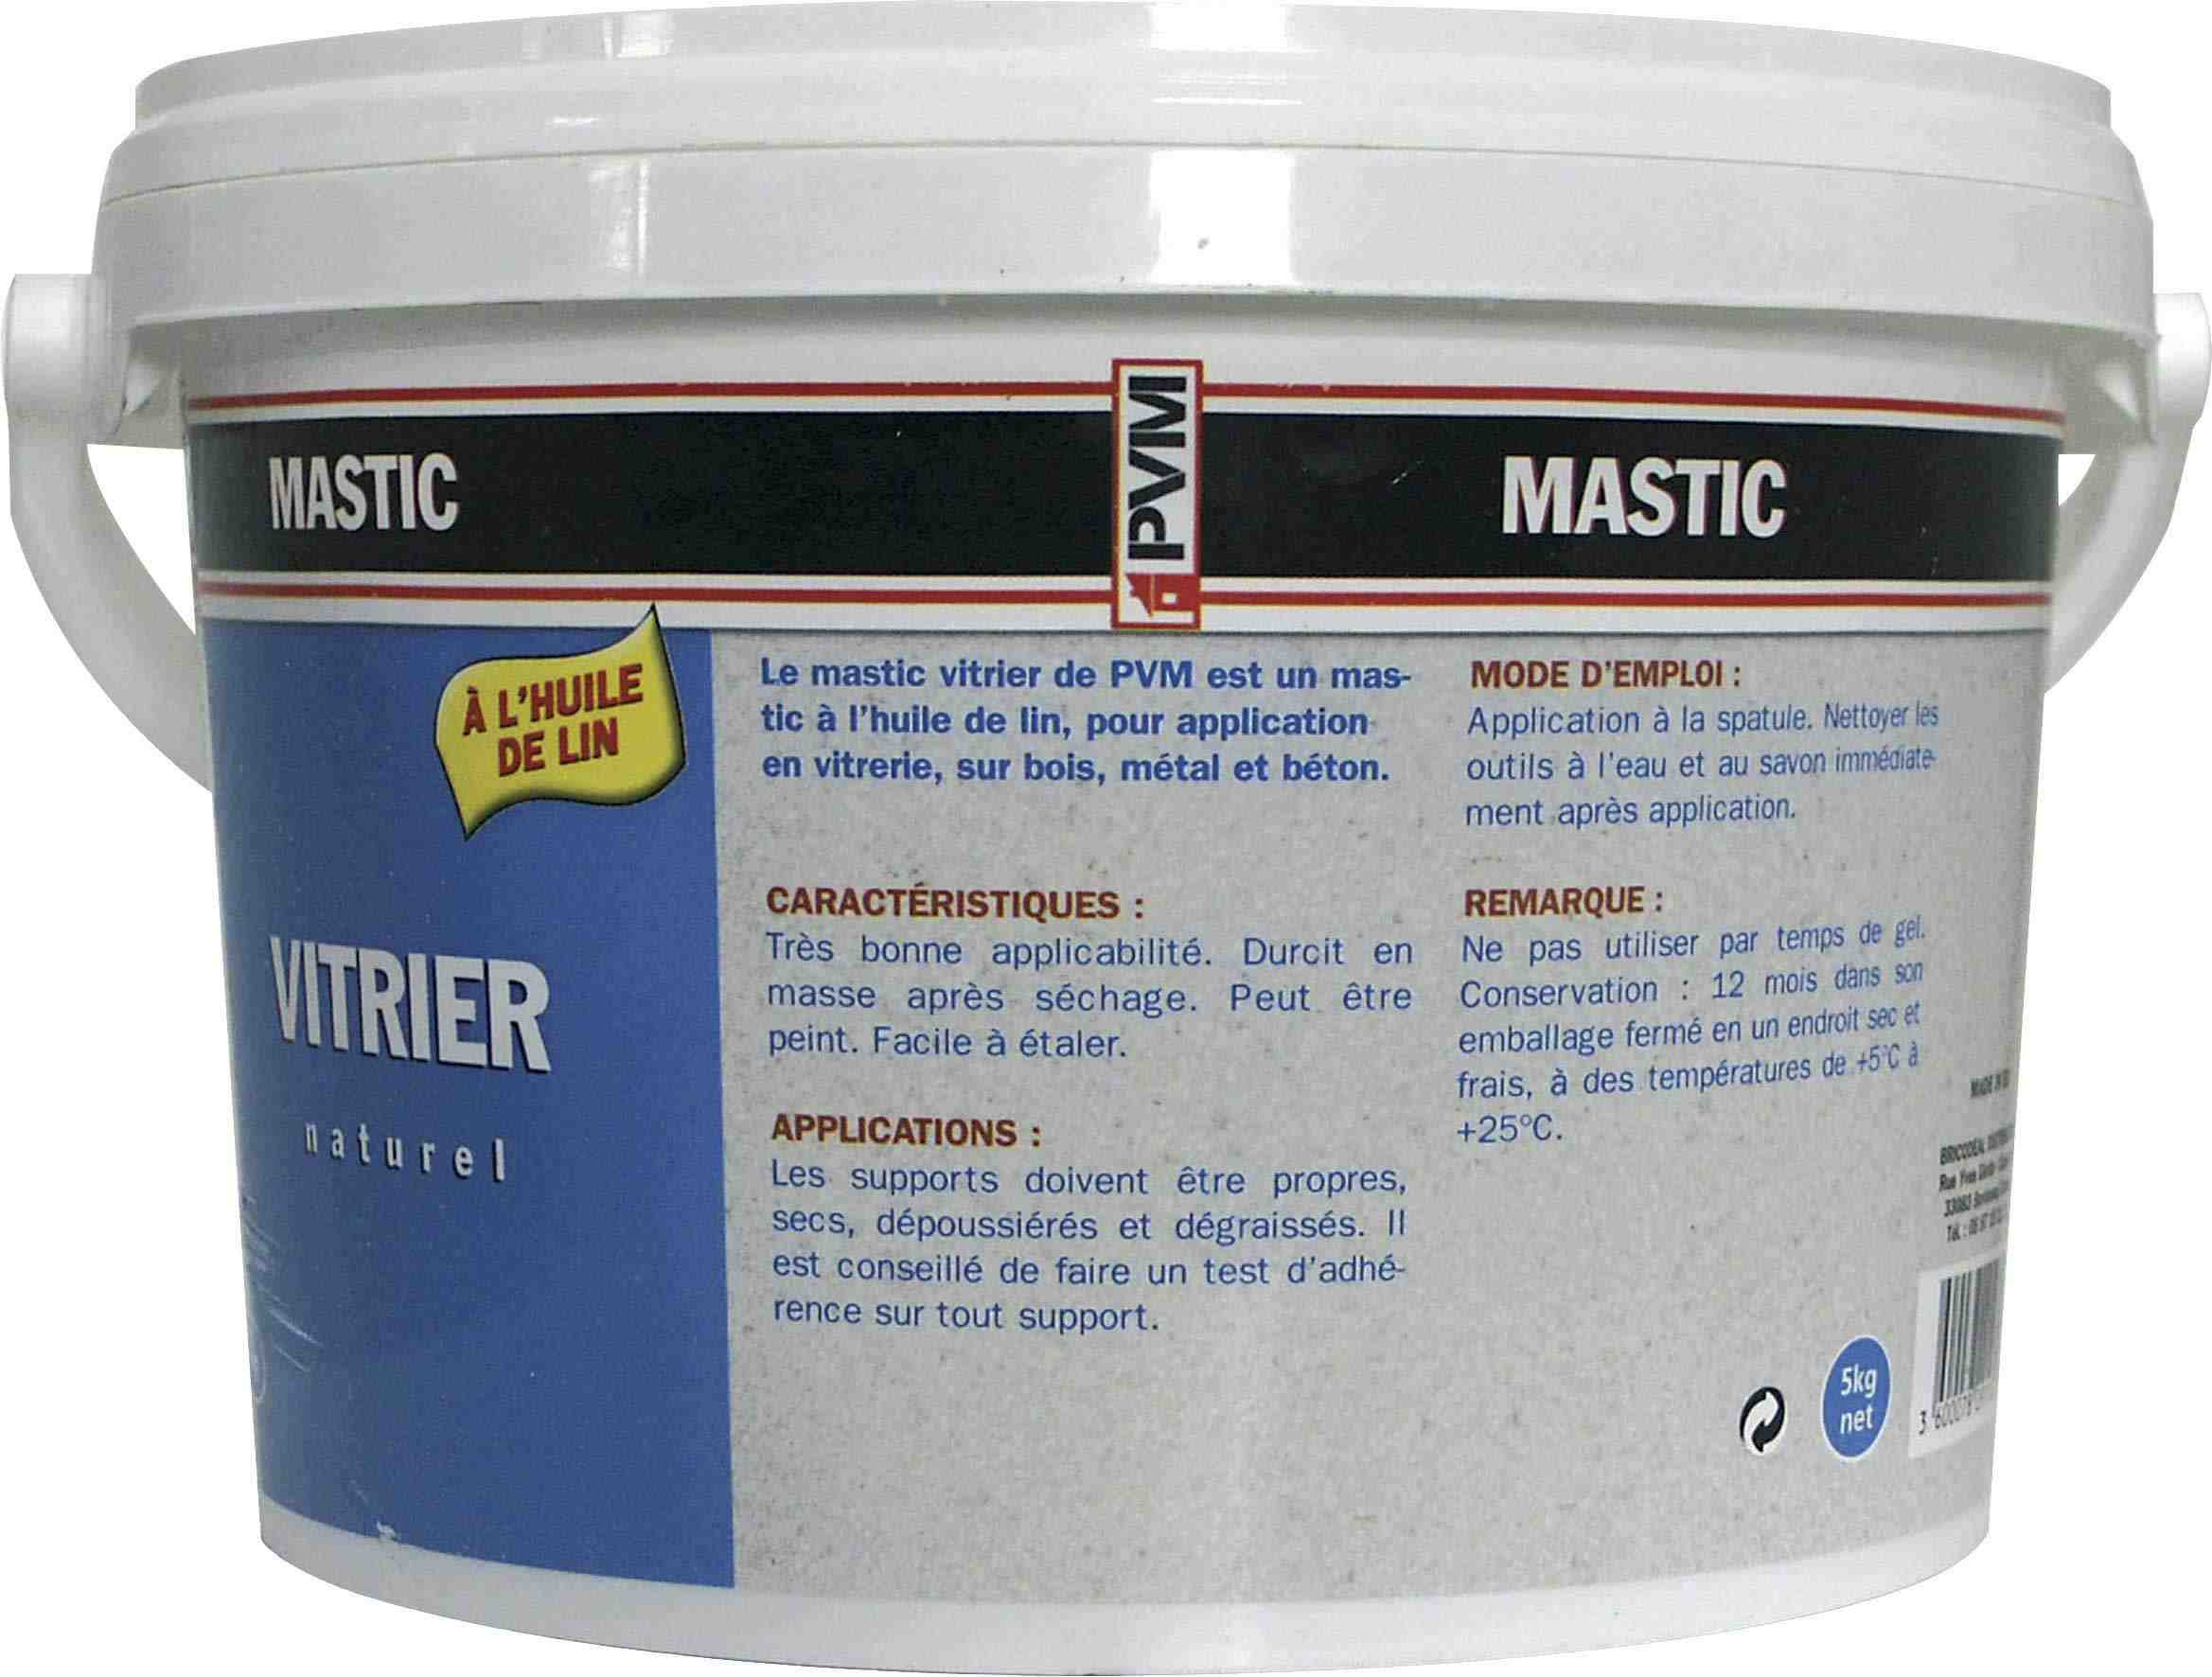 mastic vitrier pvm naturel pot 5 kg de mastic vitrier 1064969 mon magasin g n ral. Black Bedroom Furniture Sets. Home Design Ideas